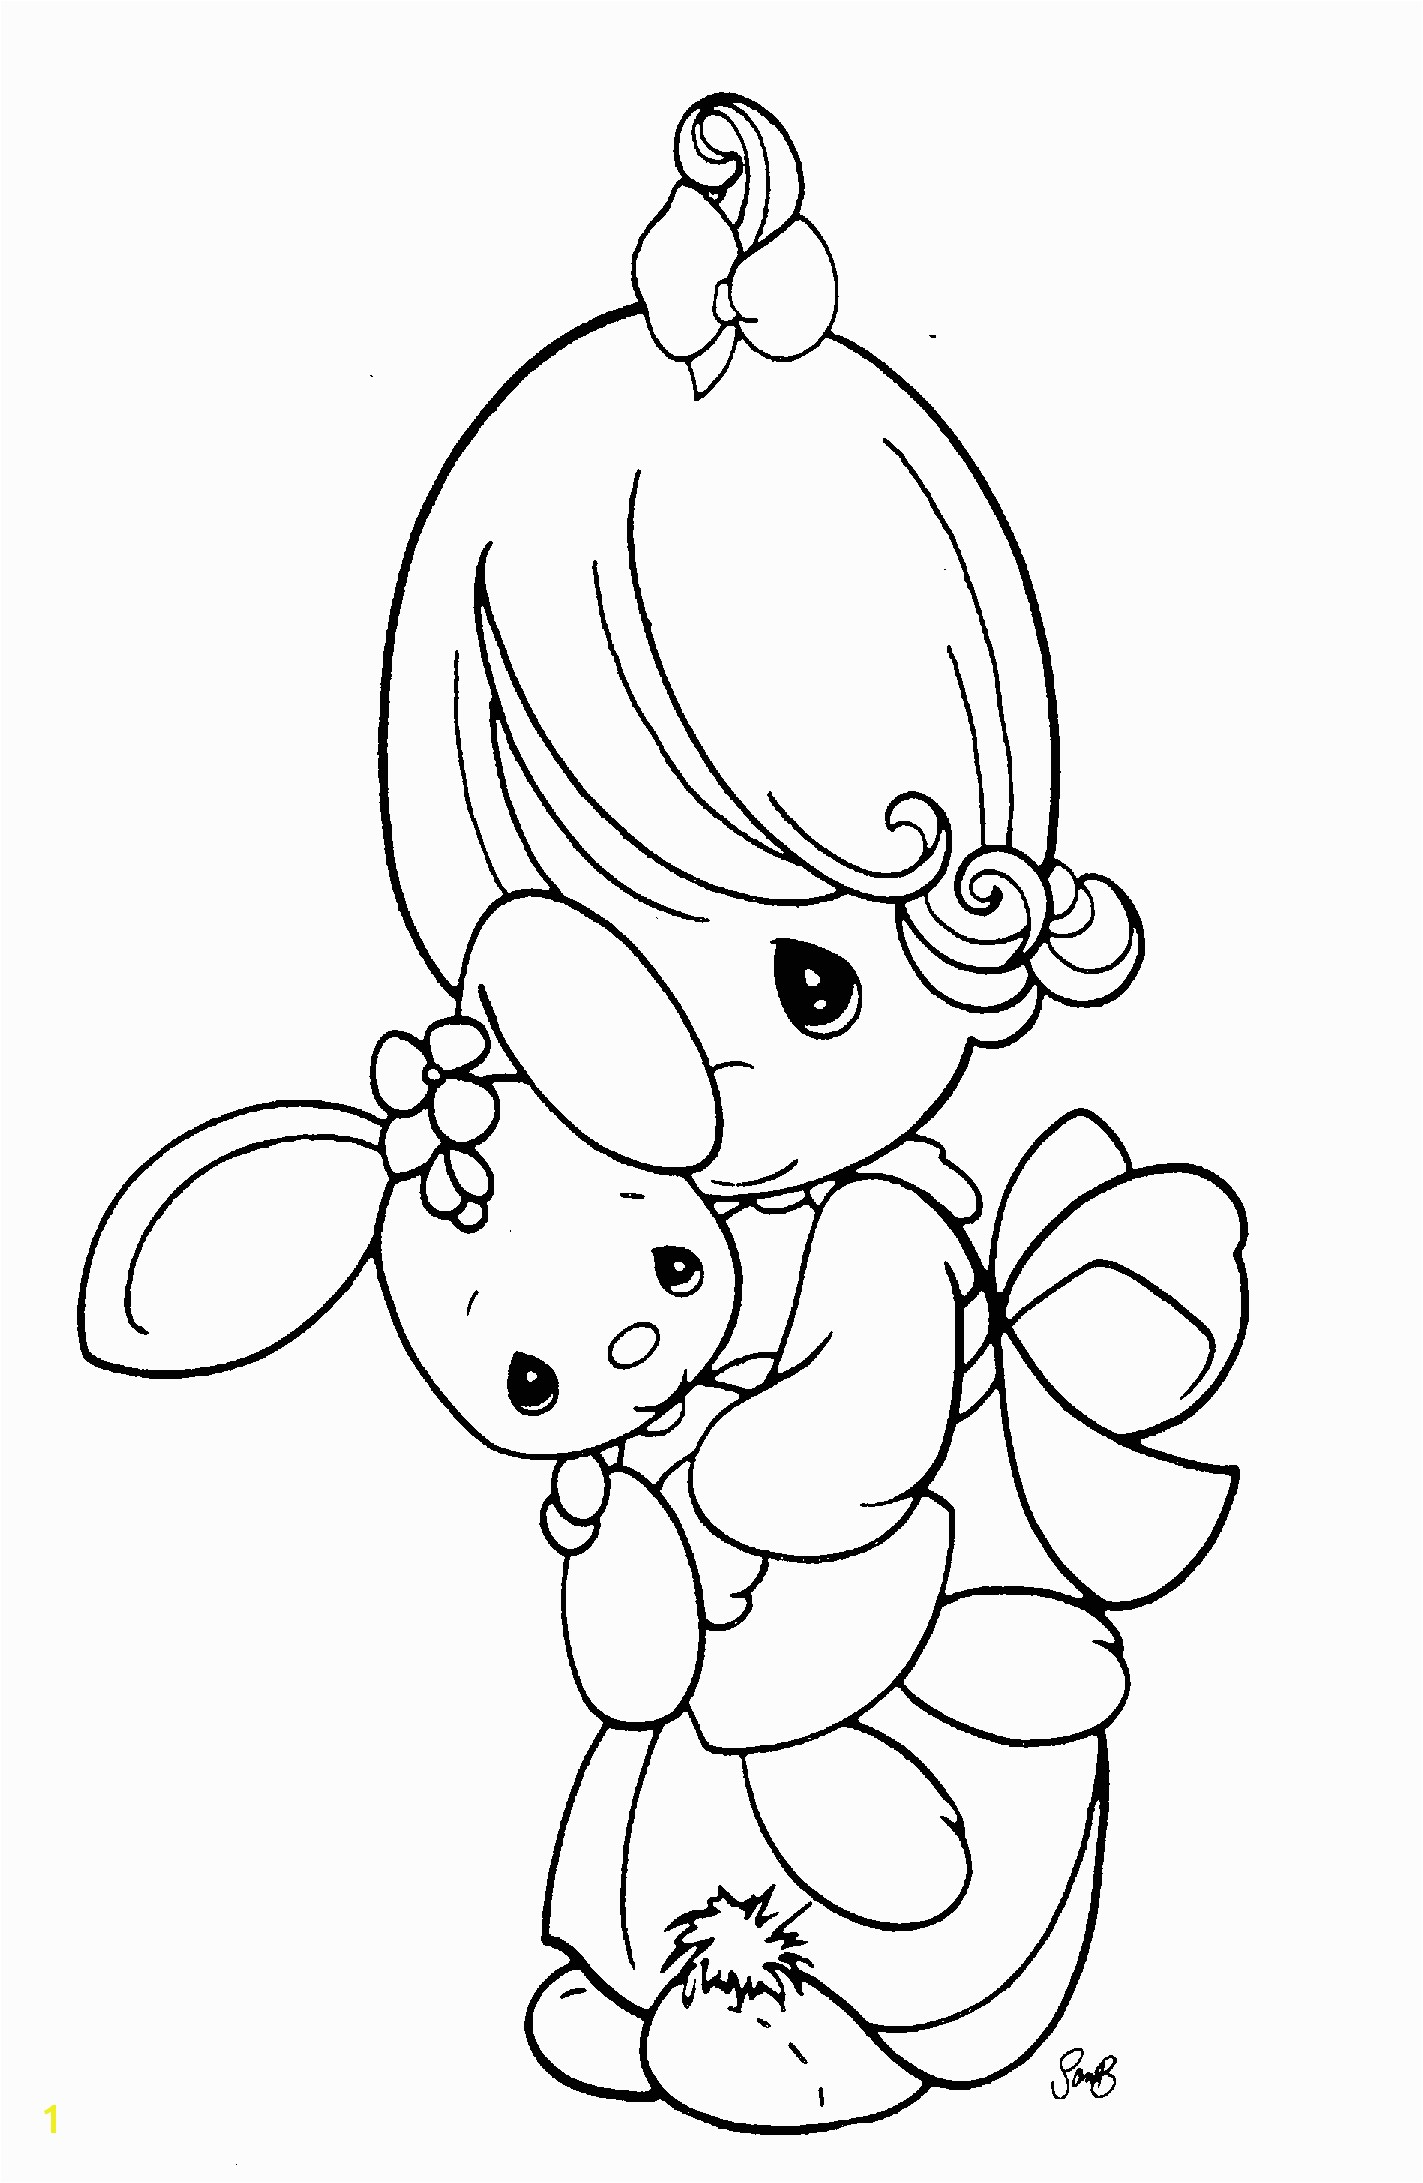 Free Printable Precious Moments Coloring Pages Inspirational Precious Moments Angel Drawing at Getdrawings Free for